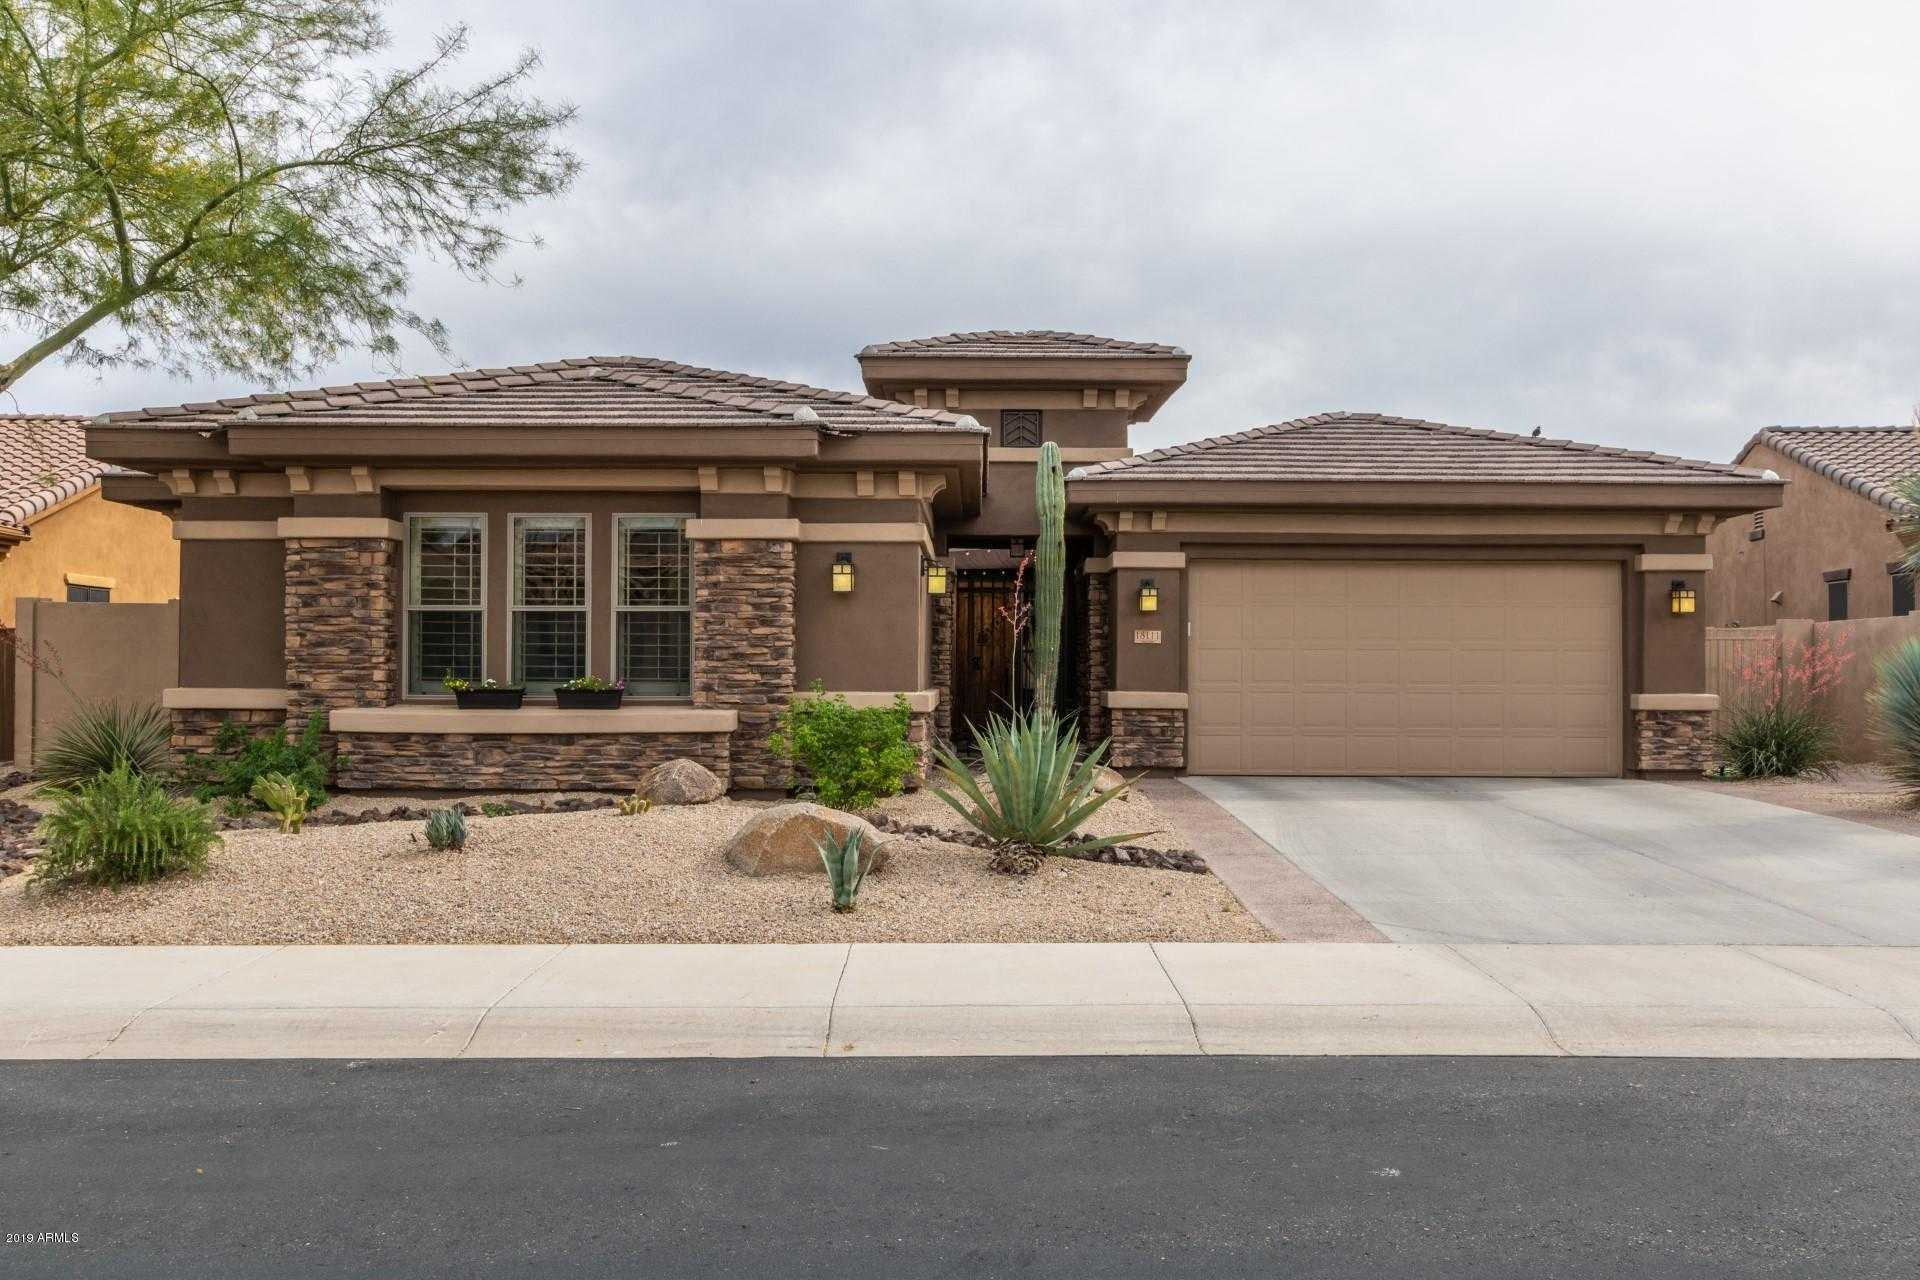 $439,900 - 5Br/4Ba - Home for Sale in Estrella Mountain Ranch Parcel 95b, Goodyear